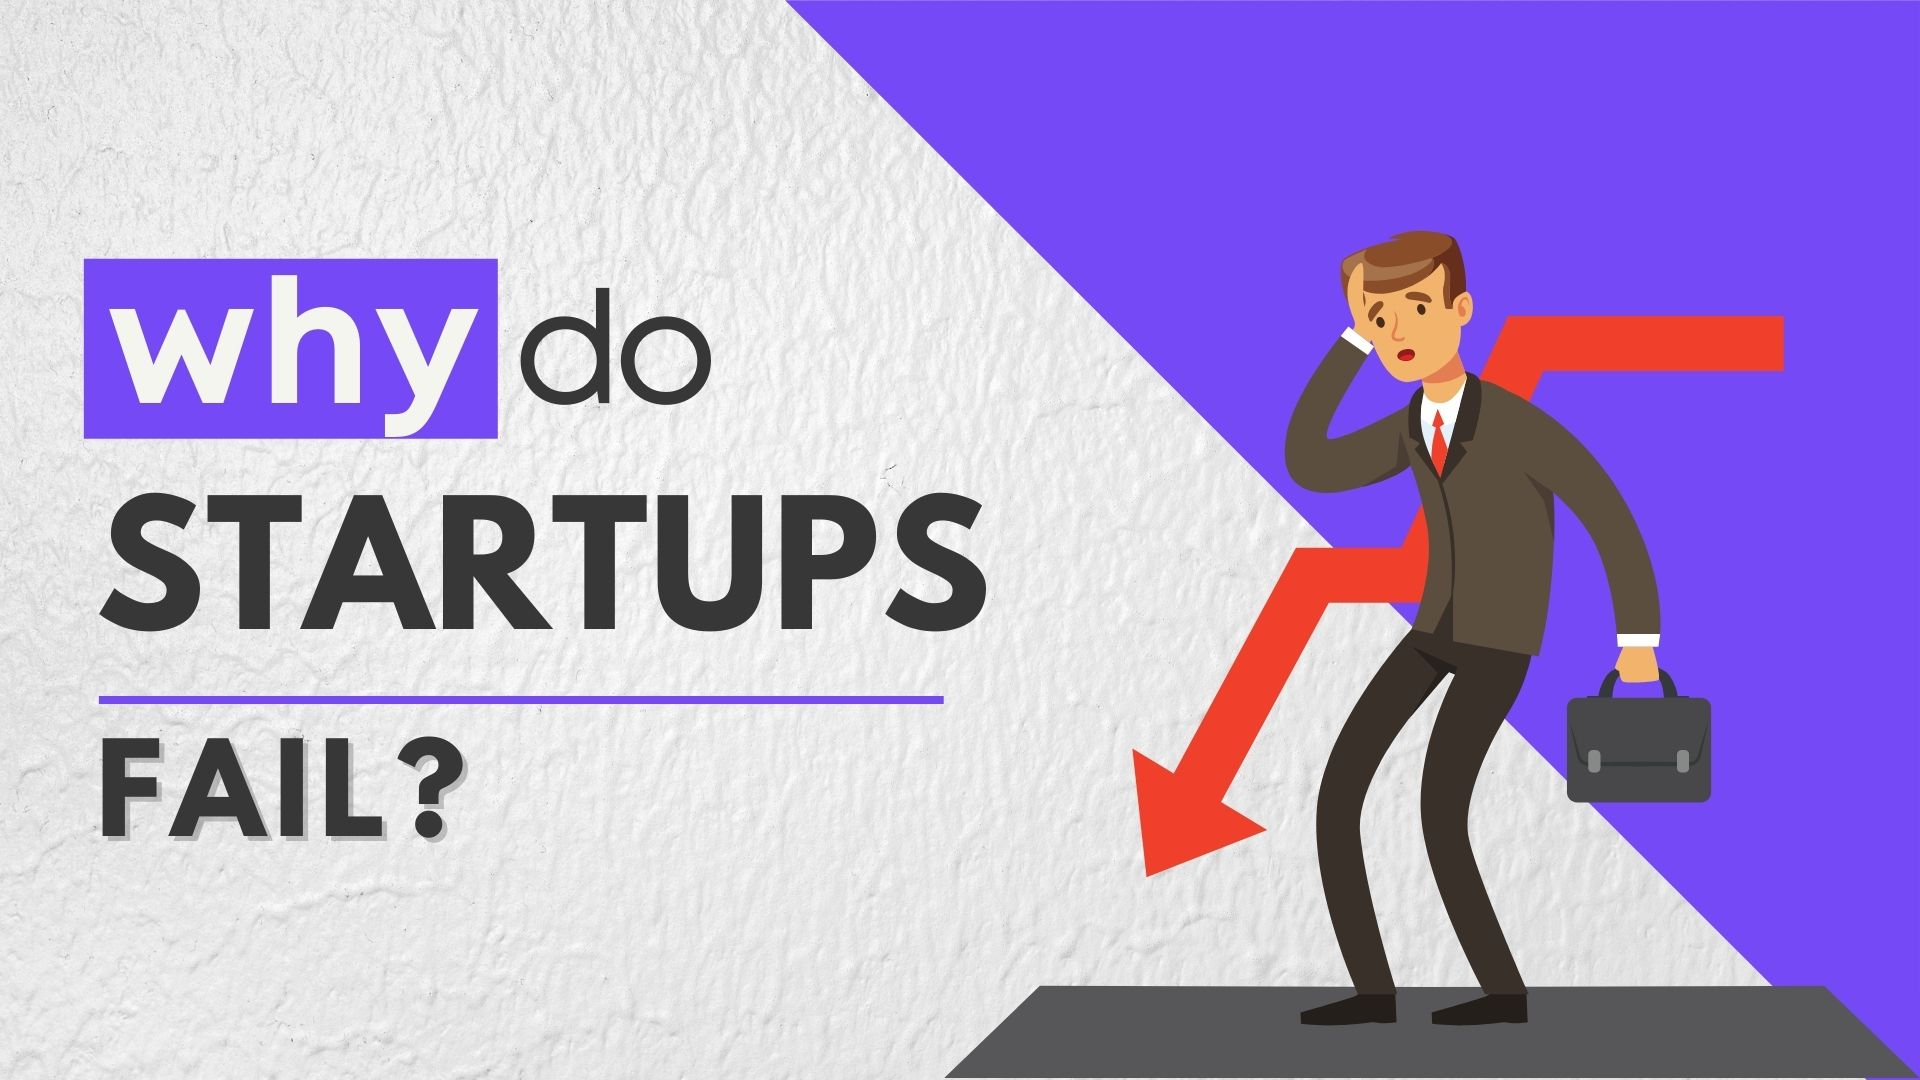 Why Do Startups Fail? - 7 Common Mistakes